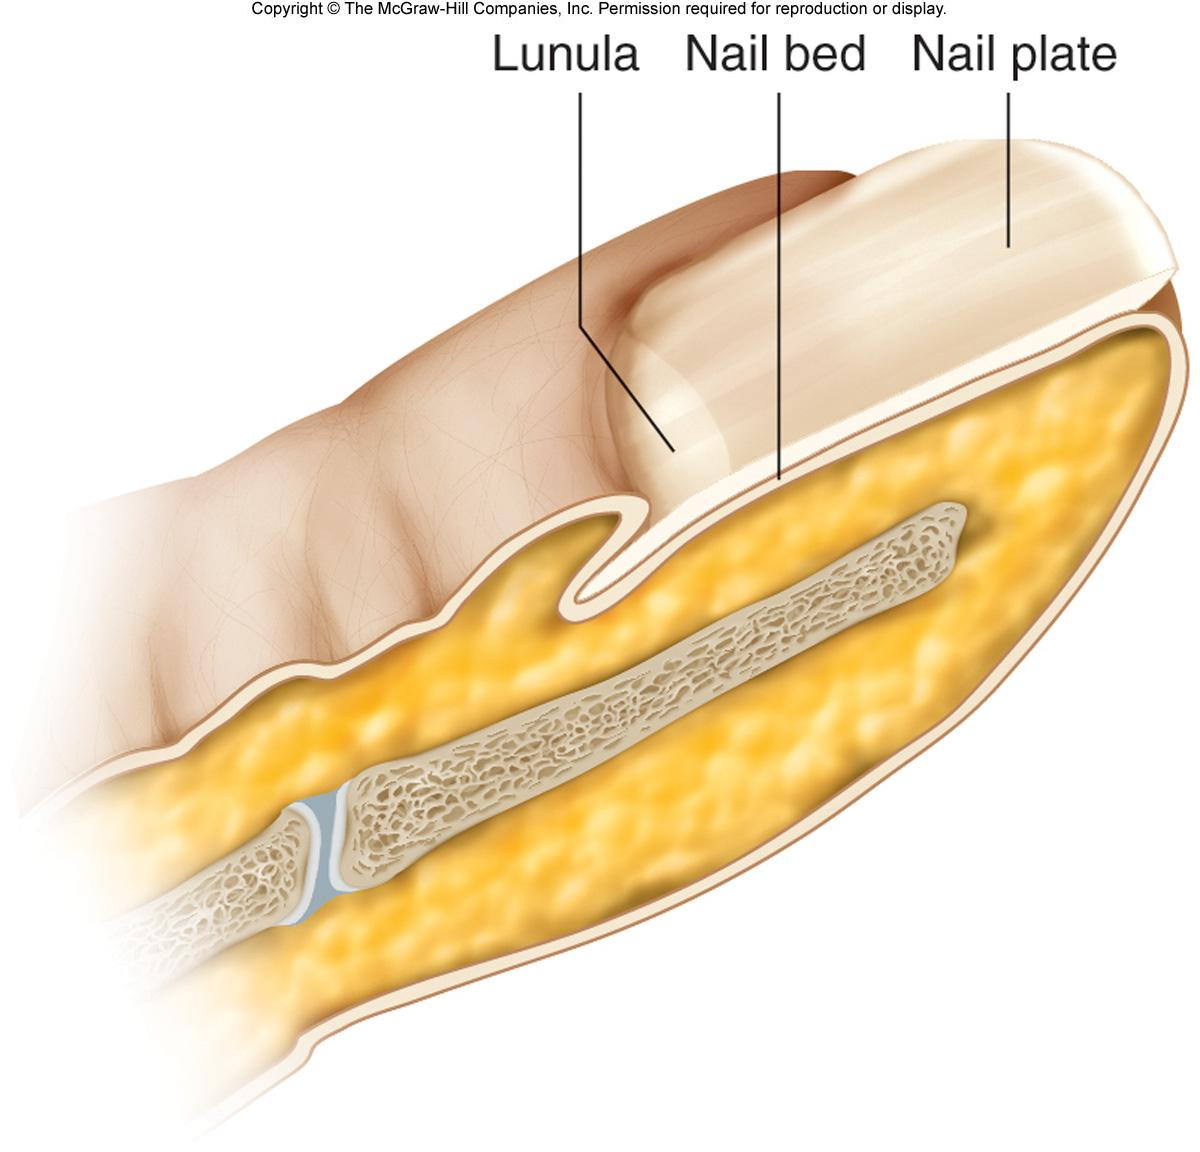 Skin - Integument Pictures | Chandler Physical Therapy